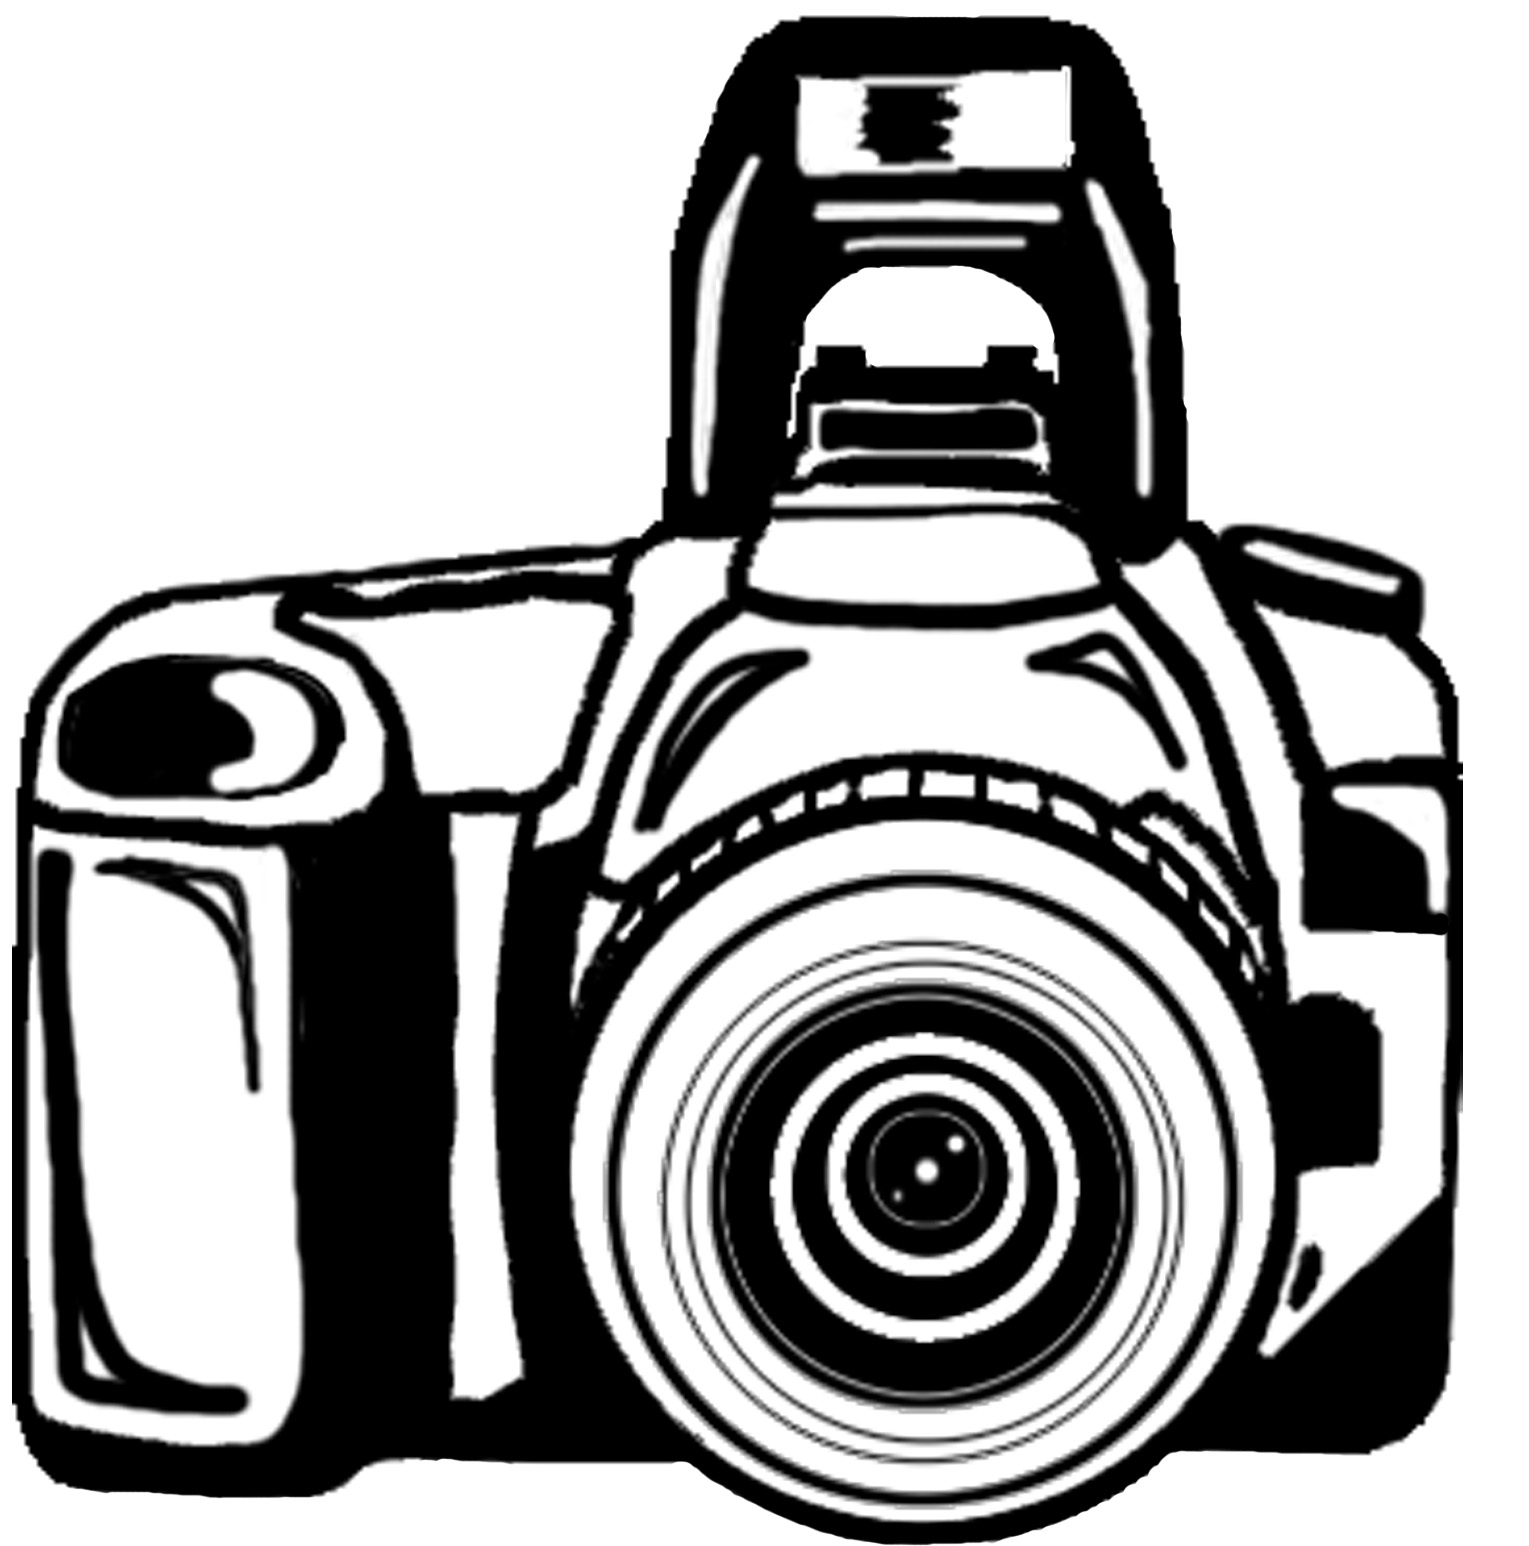 Free Vintage Camera Clip Art Black And White, Download Free.